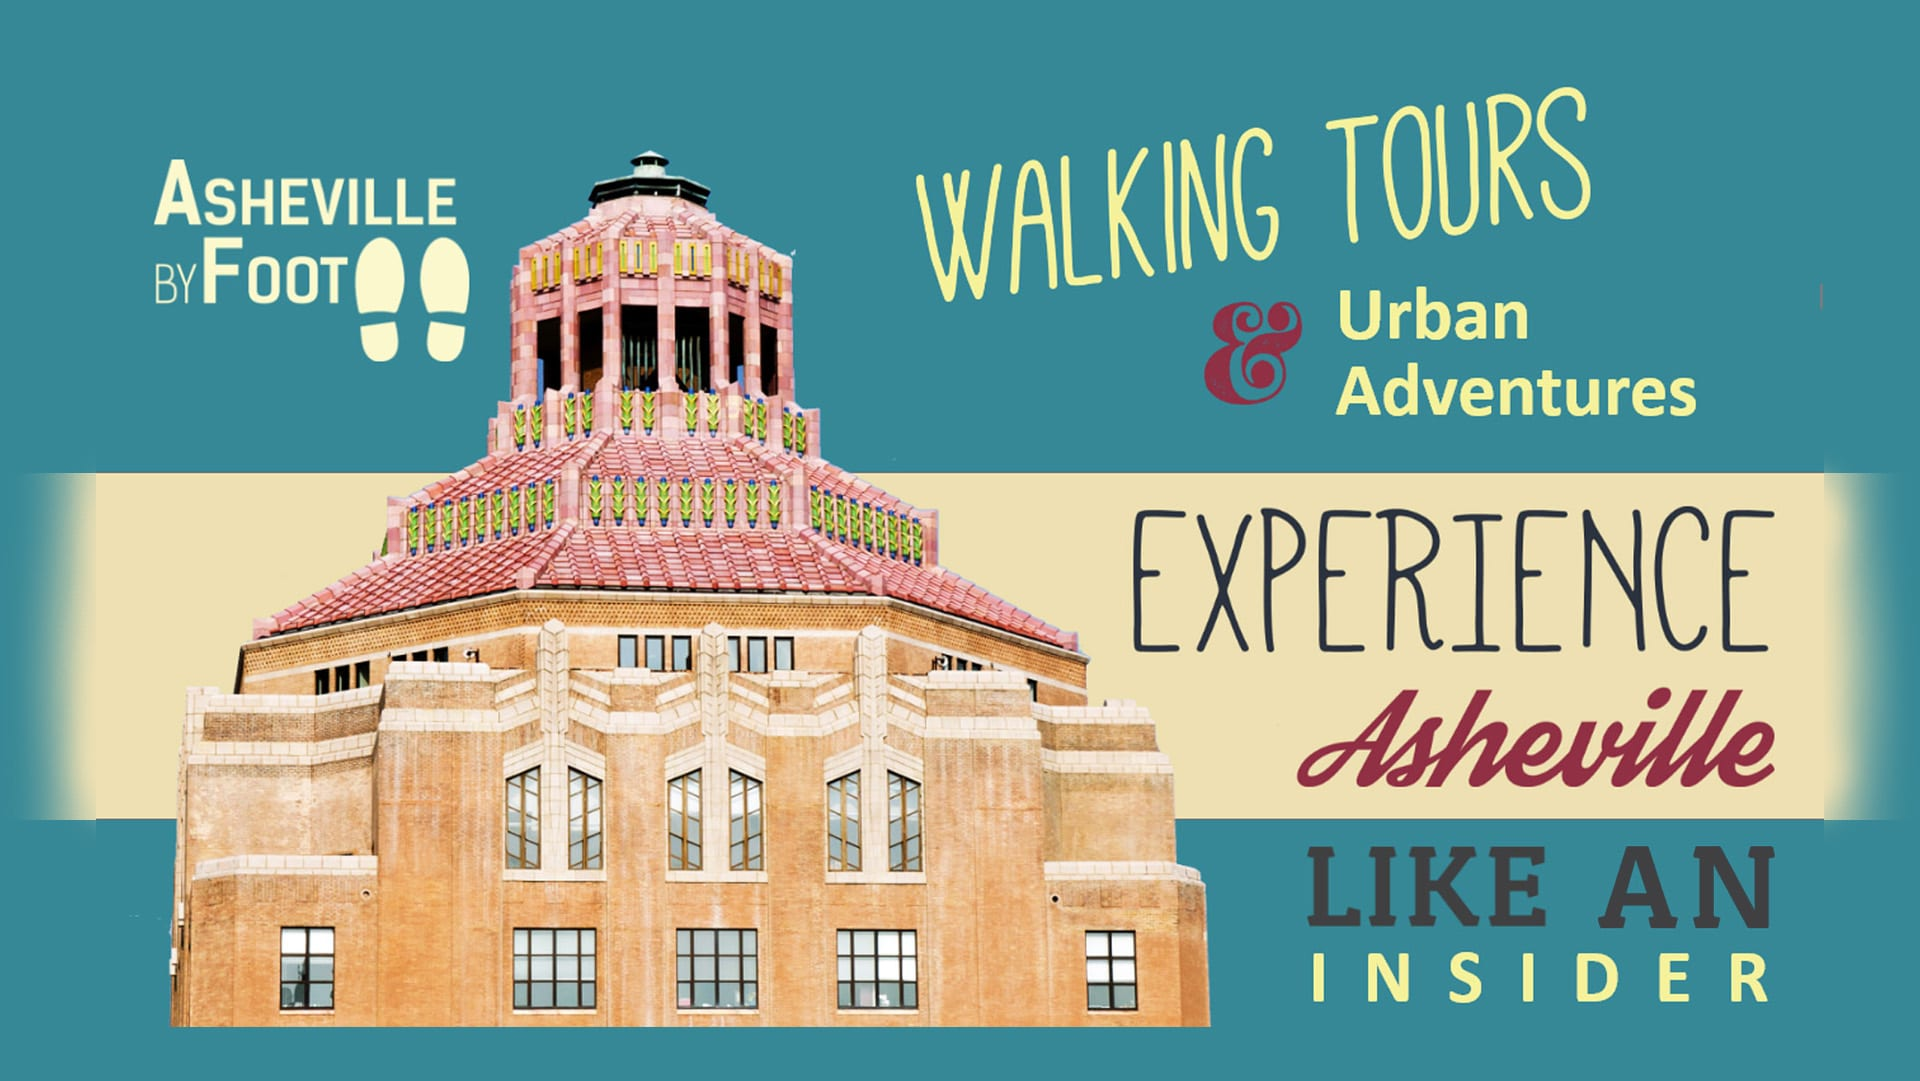 Asheville-By-Foot-Tours-Walking-Tours-In-Asheville